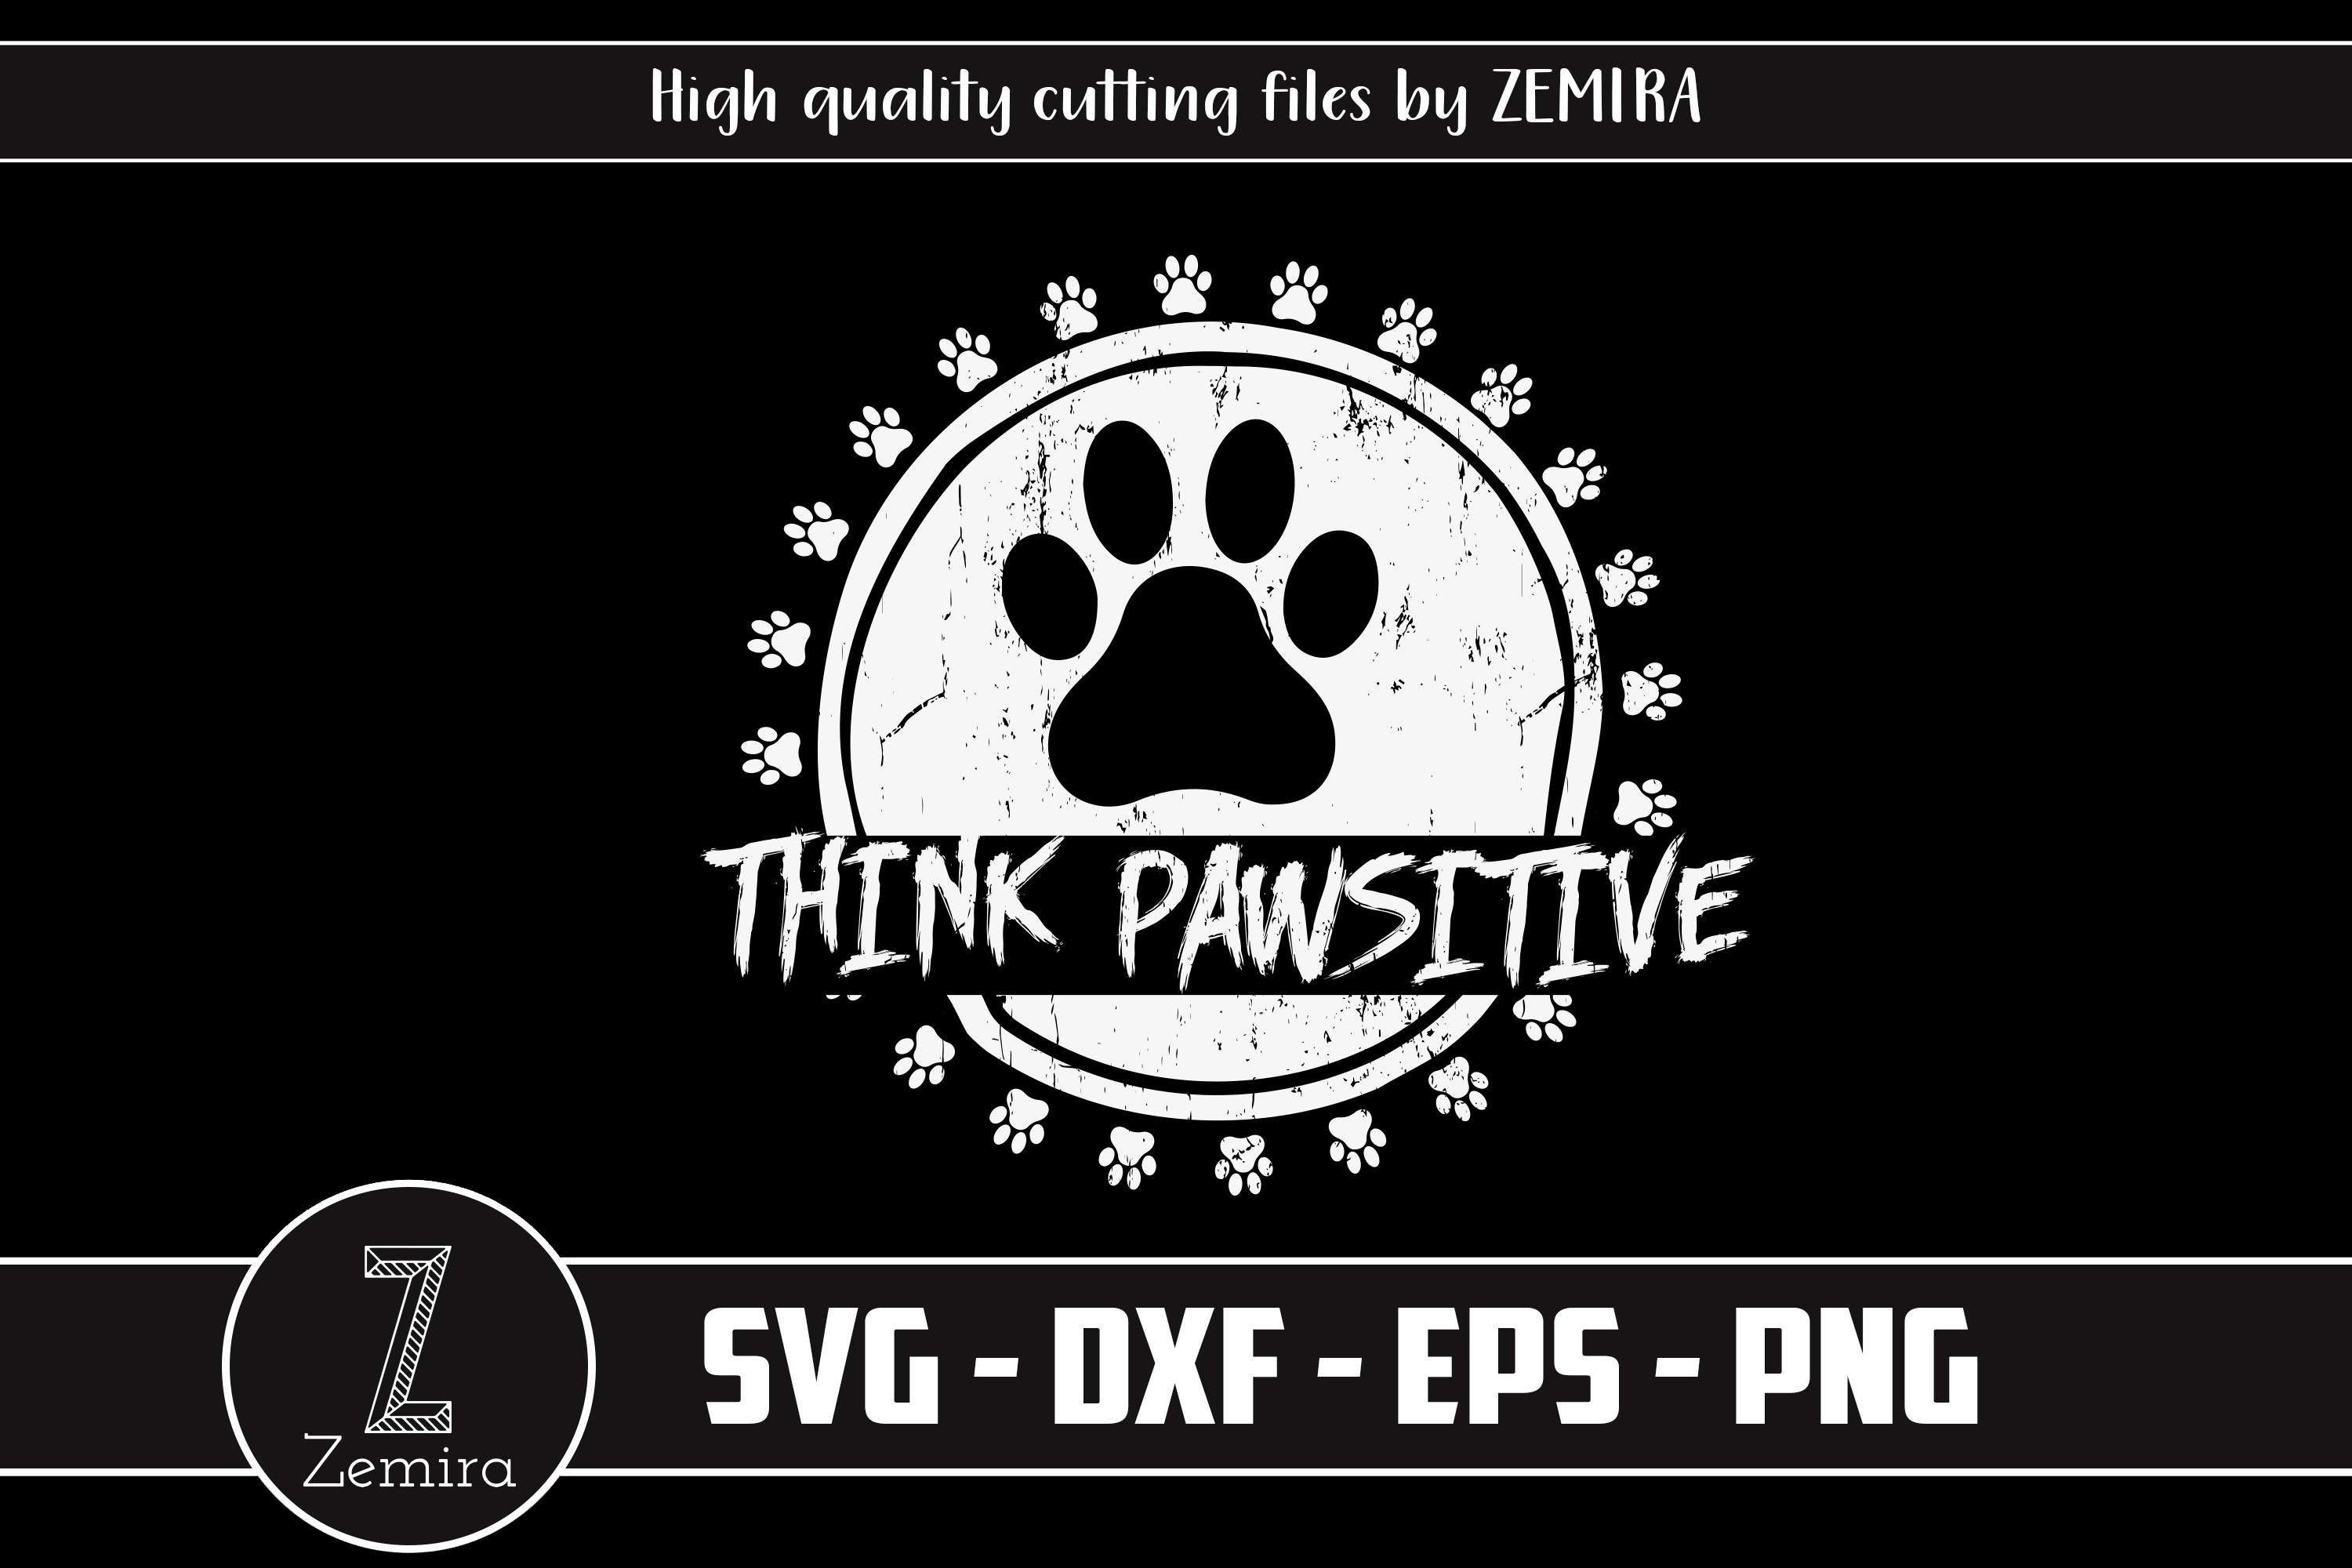 Cut Svg Files With Cricut Explore Free Svg Cut Files Create Your Diy Projects Using Your Cricut Explore Silhouette And More The Free Cut Files Include Svg Dxf Eps And Png